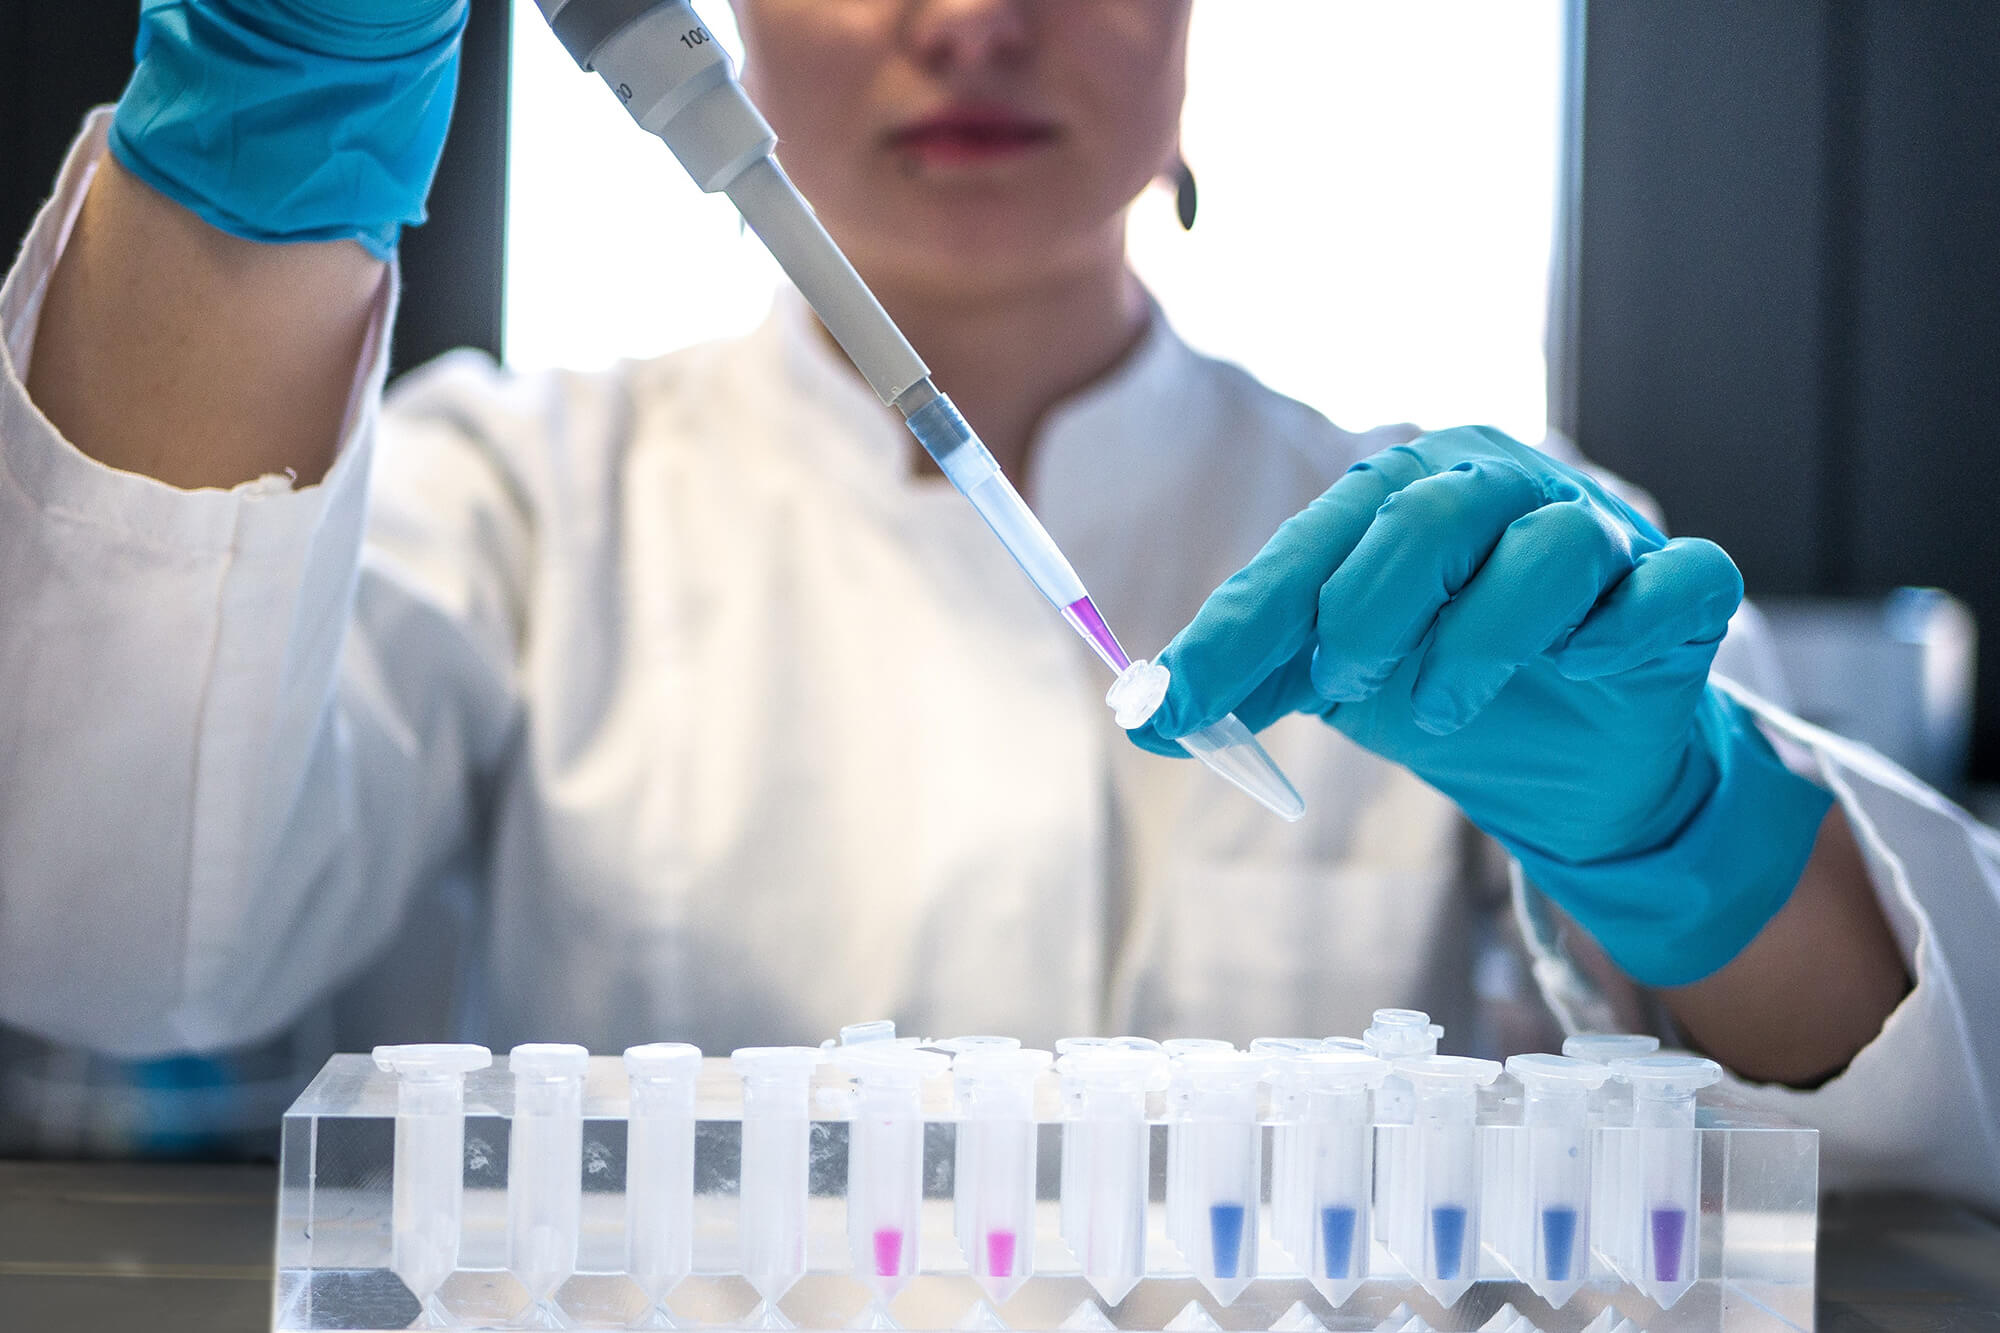 A researcher using a pipette to insert fluid into a tube